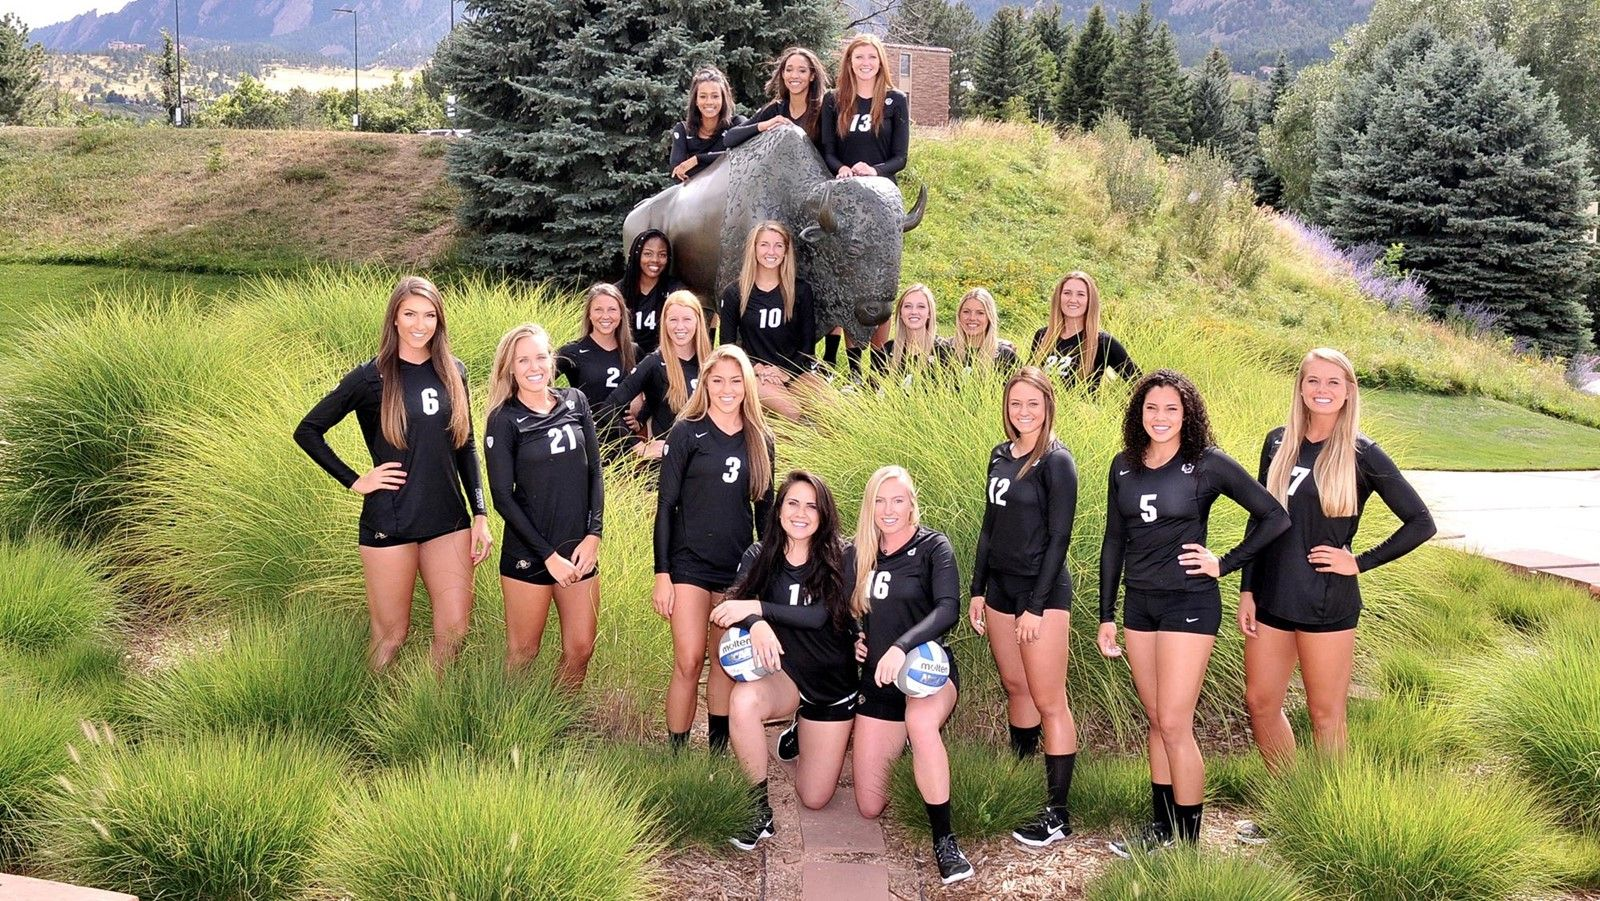 2016 Volleyball Roster Cubuffs Com University Of Colorado Buffaloes Volleyball News Volleyball Roster